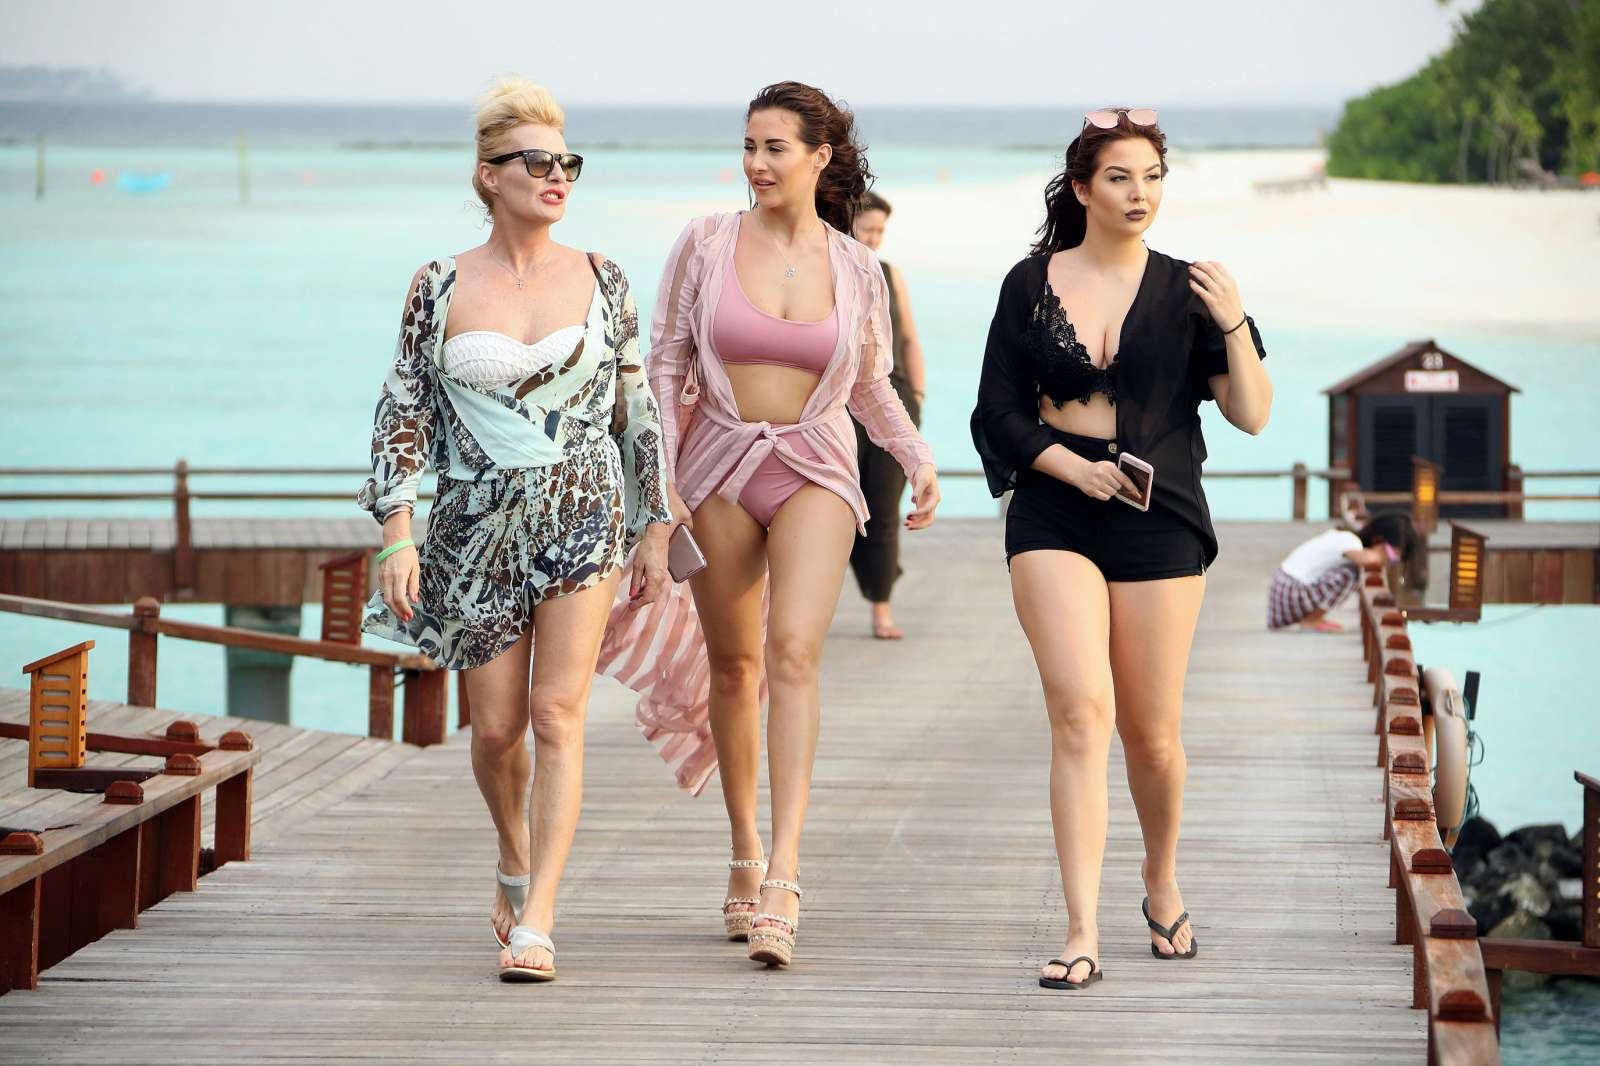 Chloe, Lauryn and Amelia Goodman on the beach in the Maldives